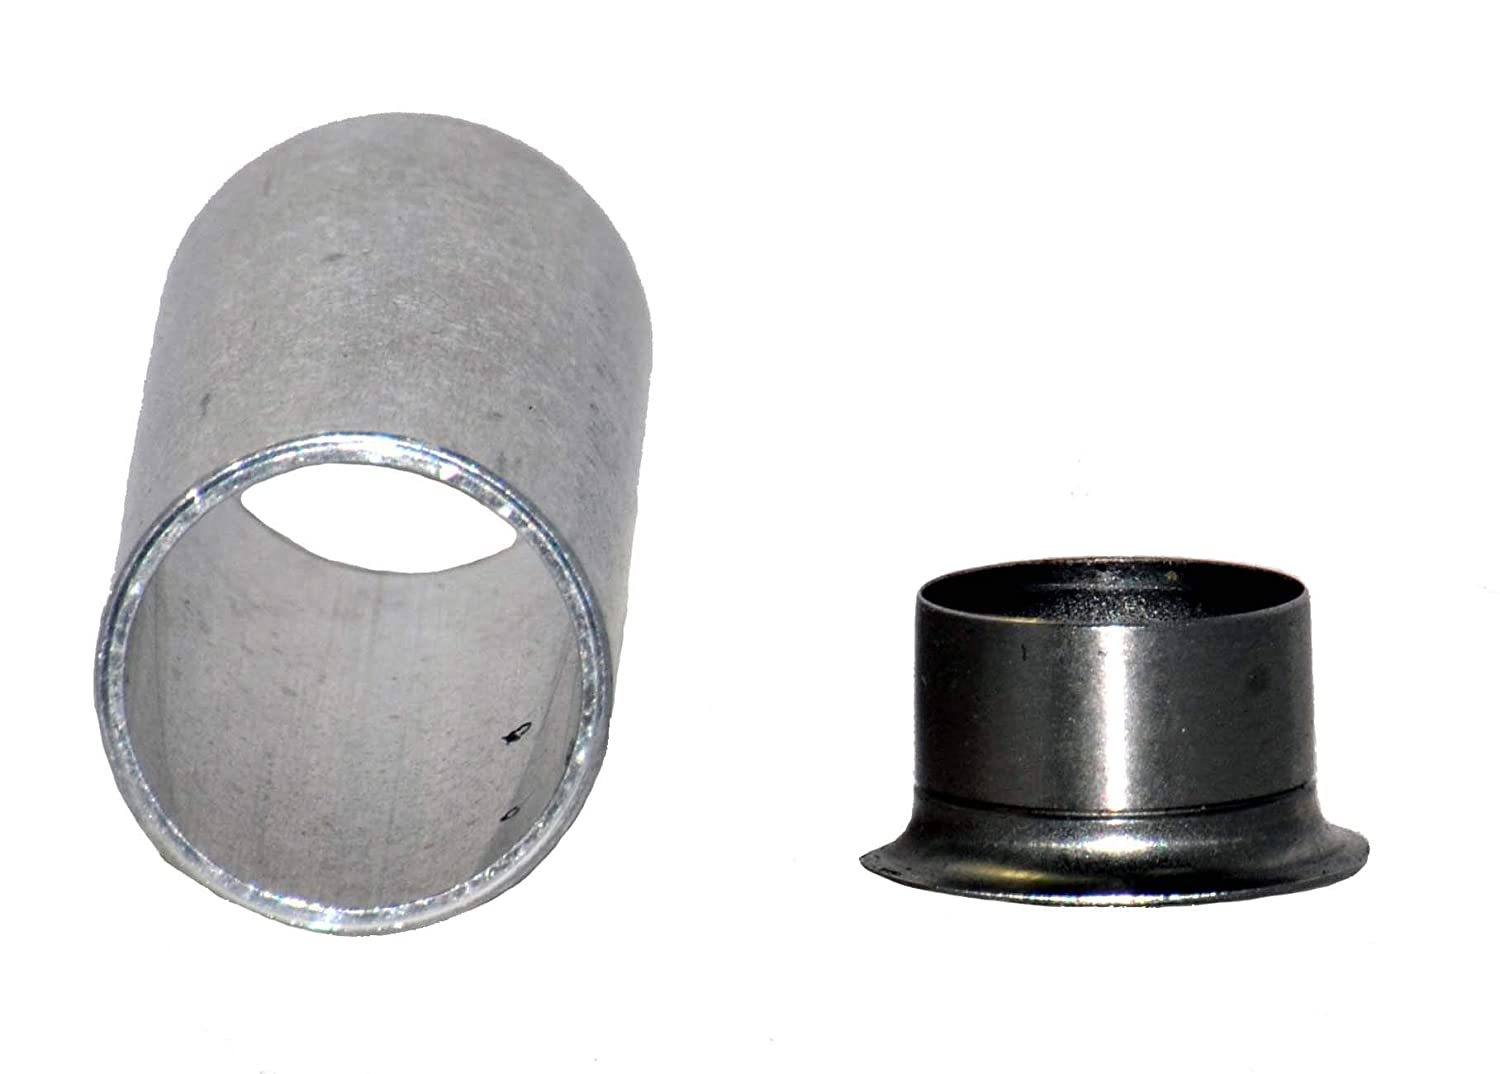 SKF Speedi Sleeve Wellenschutzh/ülse 99185//47,17-47,32 mm